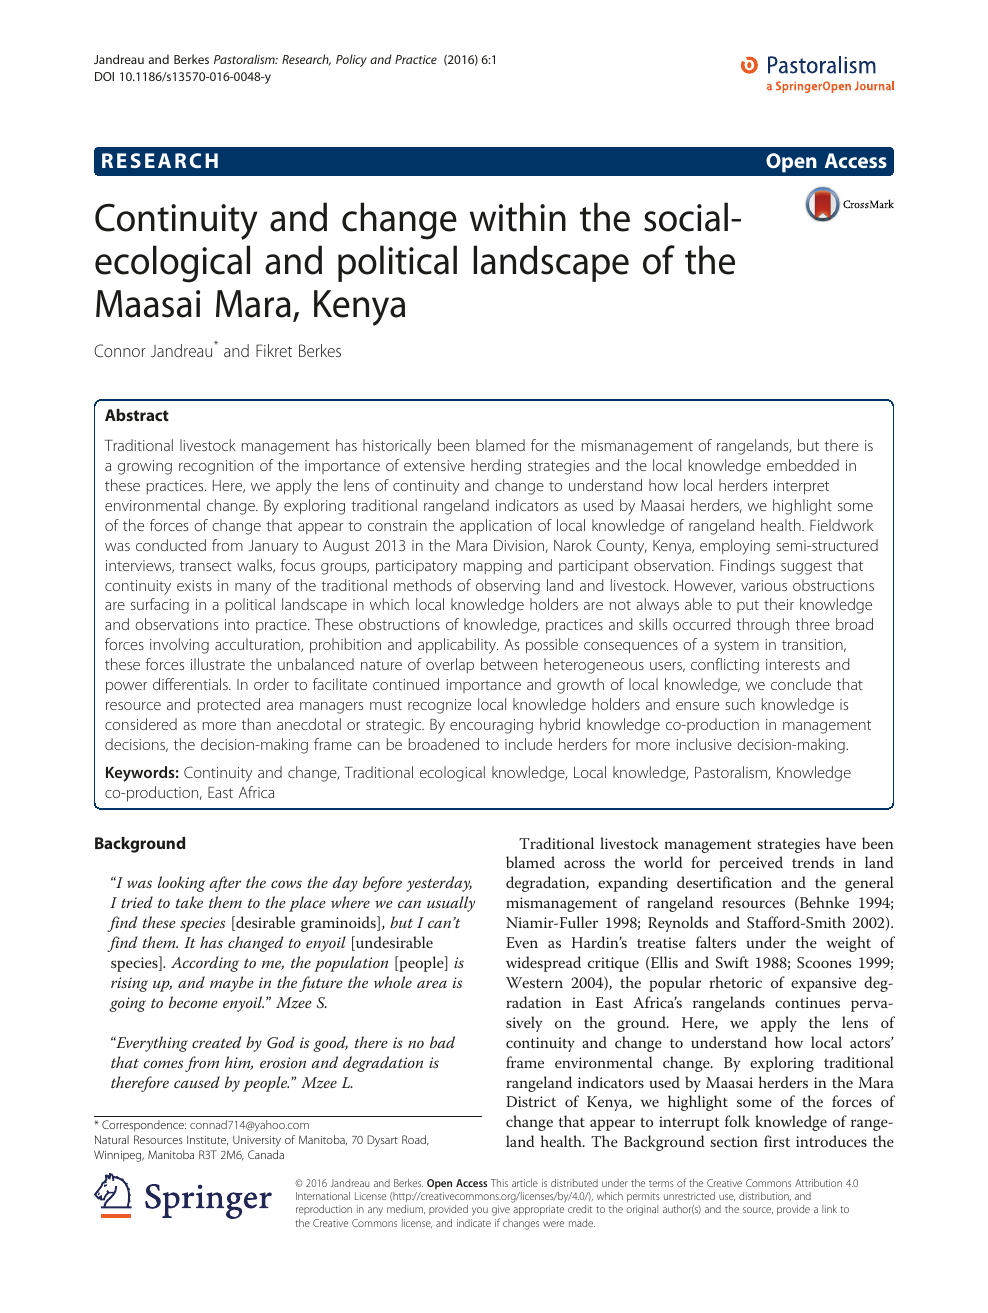 Continuity And Change Within The Social Ecological And Political Landscape Of The Maasai Mara Kenya Topic Of Research Paper In History And Archaeology Download Scholarly Article Pdf And Read For Free On